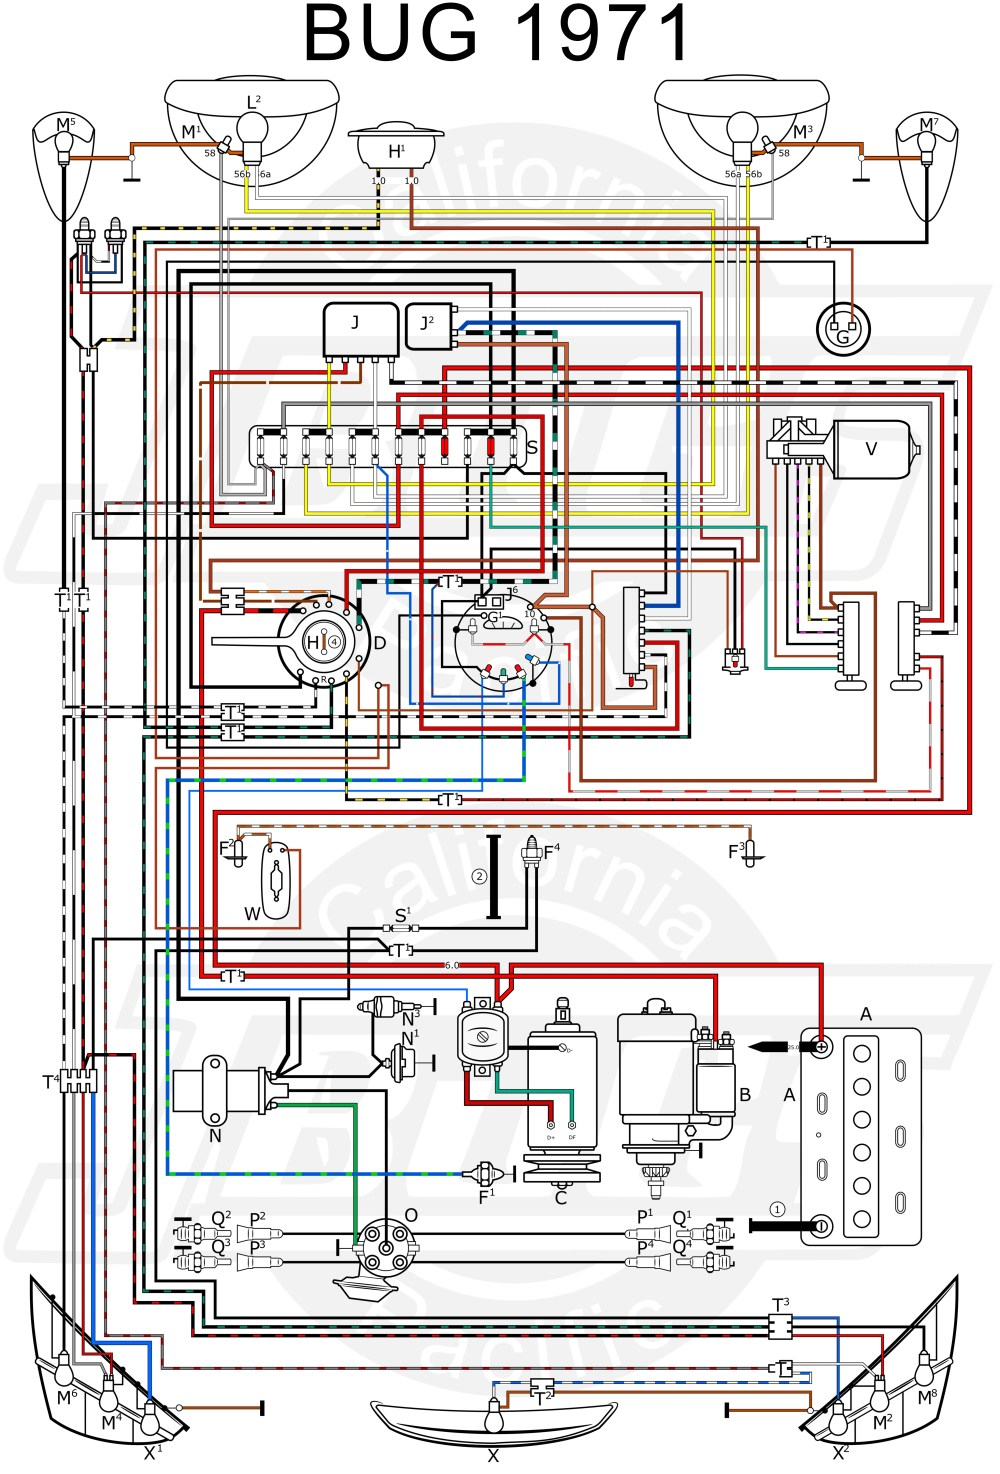 medium resolution of vw wire diagram schematic wiring diagrams rh 46 koch foerderbandtrommeln de vw generator to alternator conversion wiring diagram vw alternator